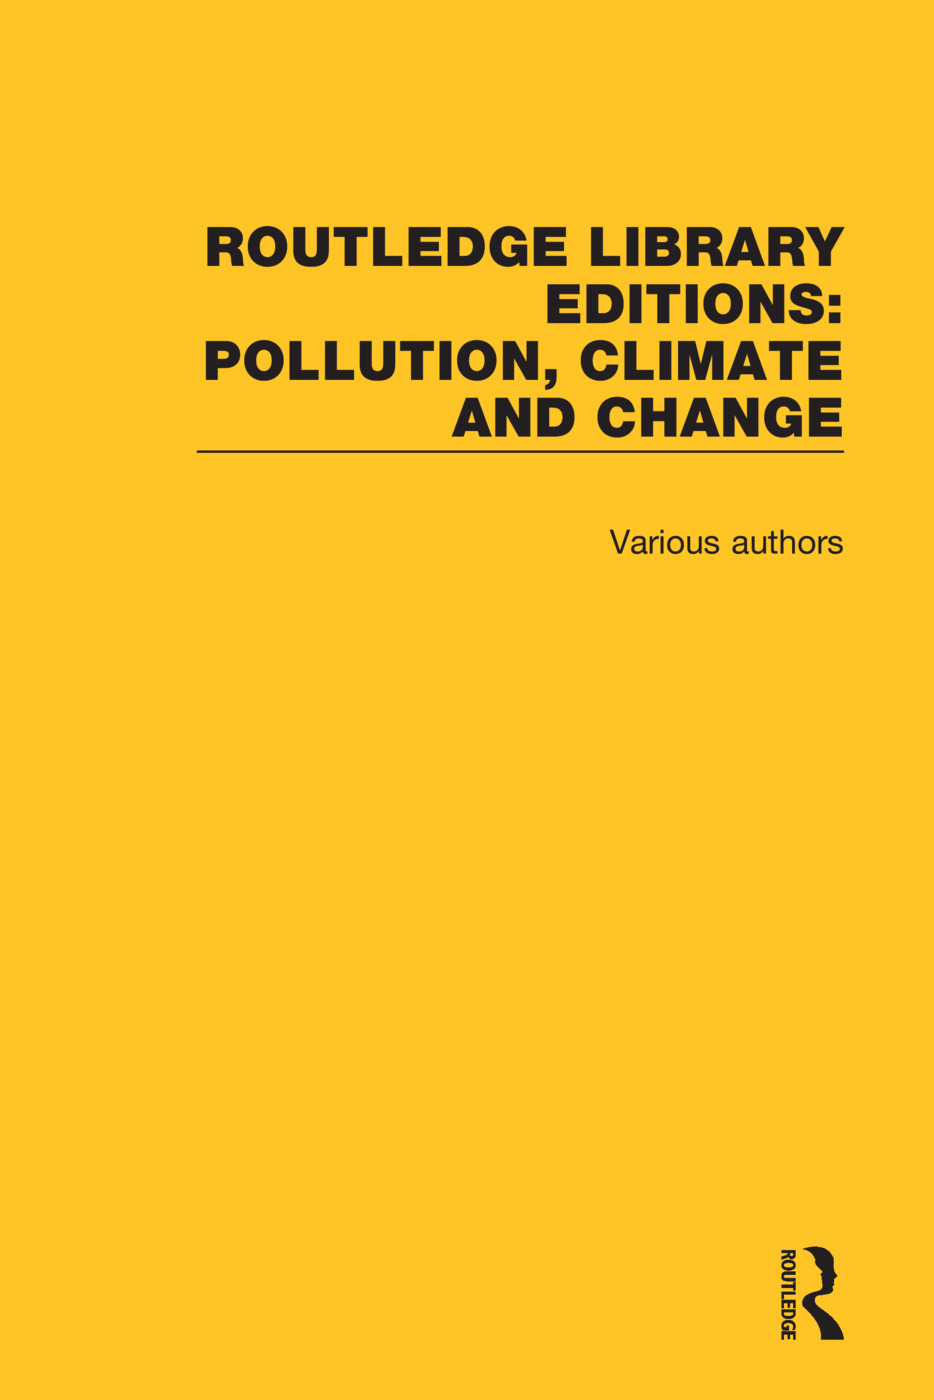 Routledge Library Editions: Pollution, Climate and Change book cover